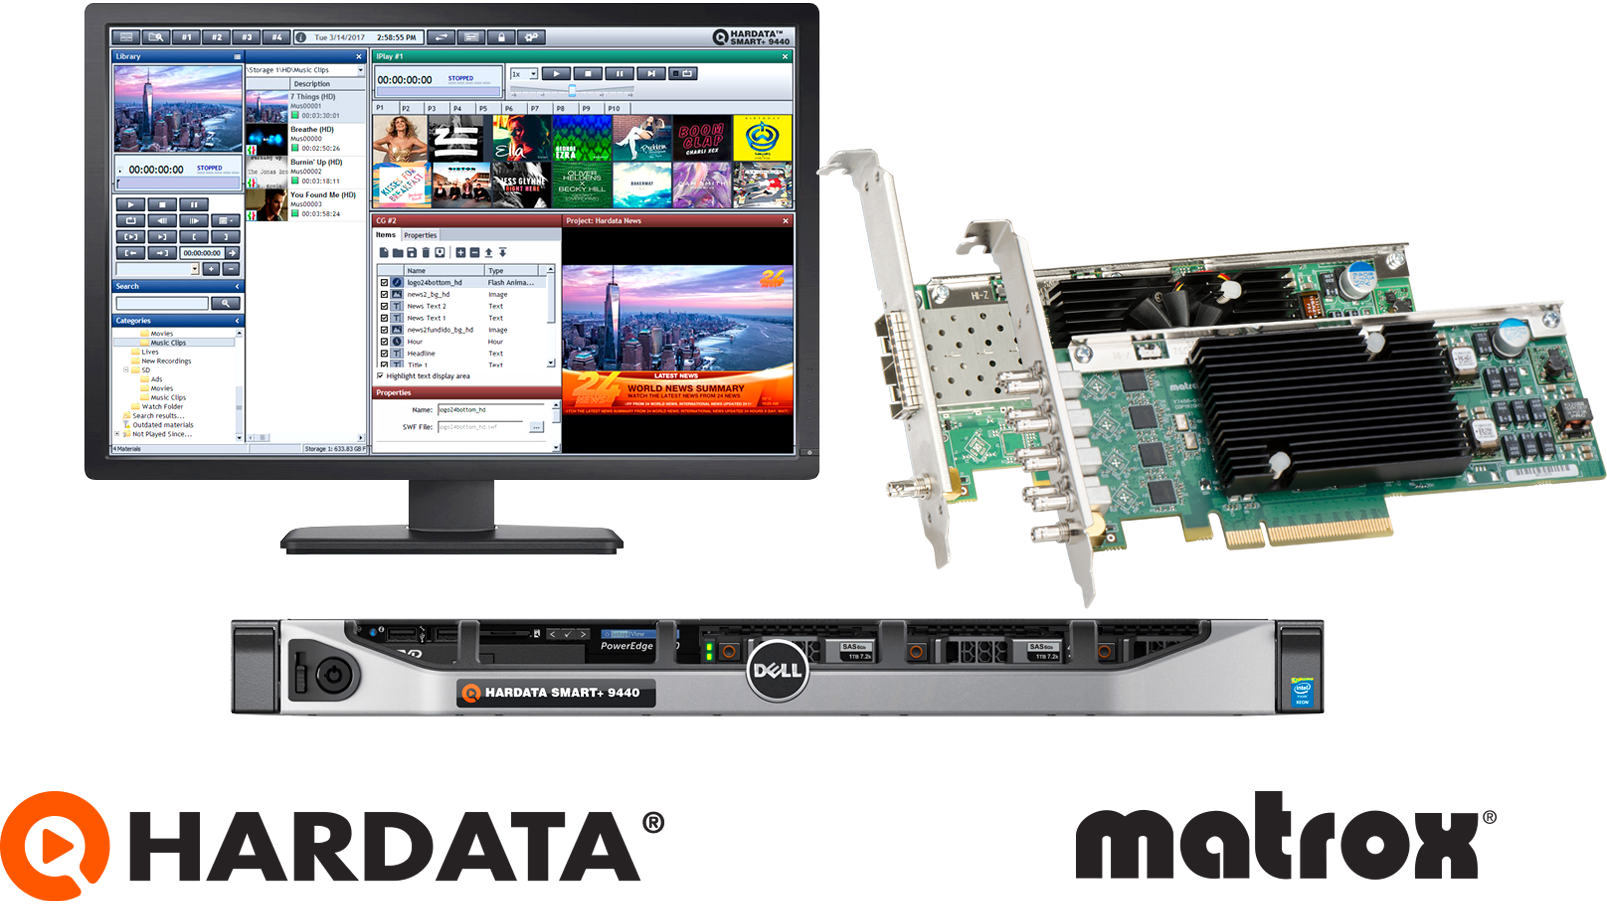 HARDATA Corp Incorporated the Matrox DSX LE4 LP and Matrox X.mio3 IP